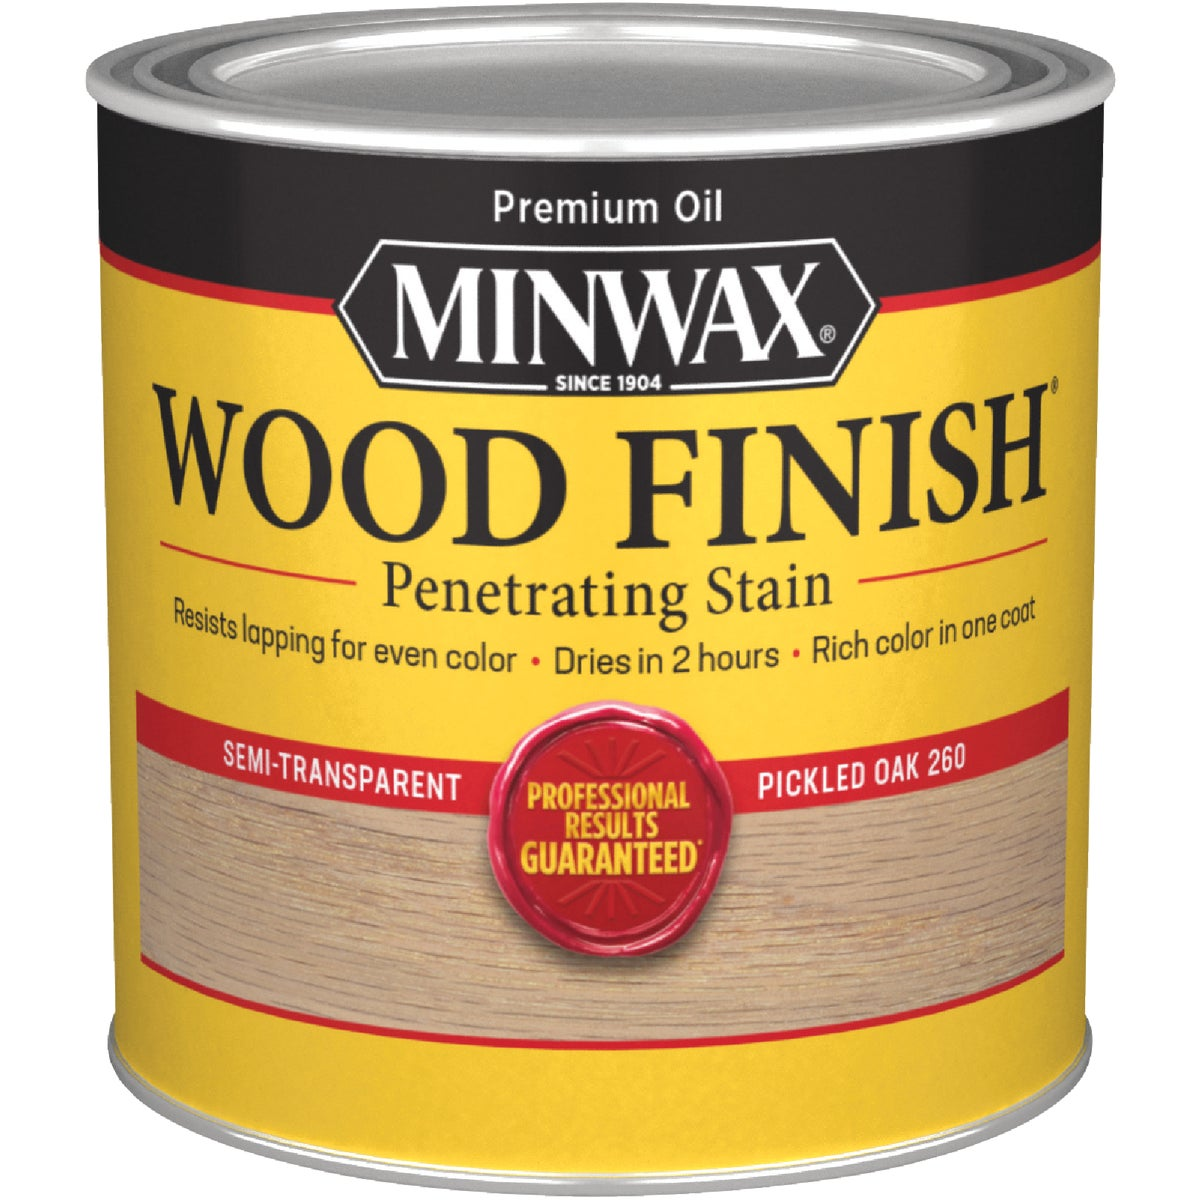 PICKLED OAK WOOD STAIN - 226004444 by Minwax Company